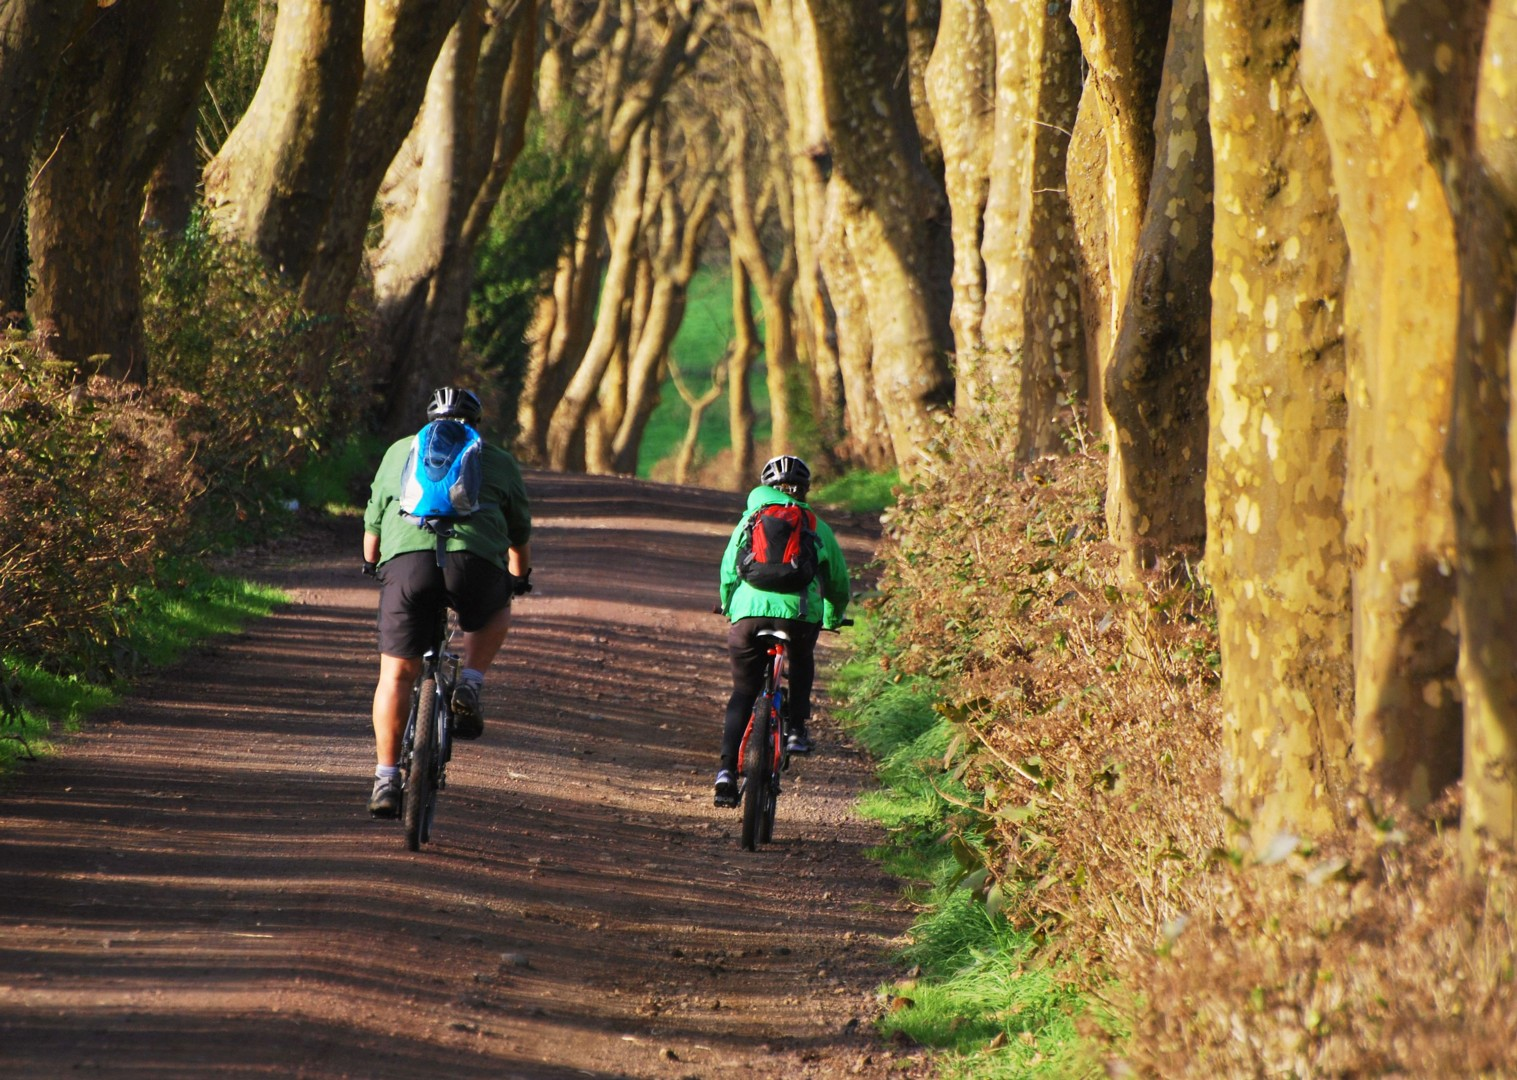 self-guided-leisure-cycling-adventure-azores.jpg - The Azores - Islands and Volcanoes - Self-Guided Leisure Cycling Holiday - Leisure Cycling